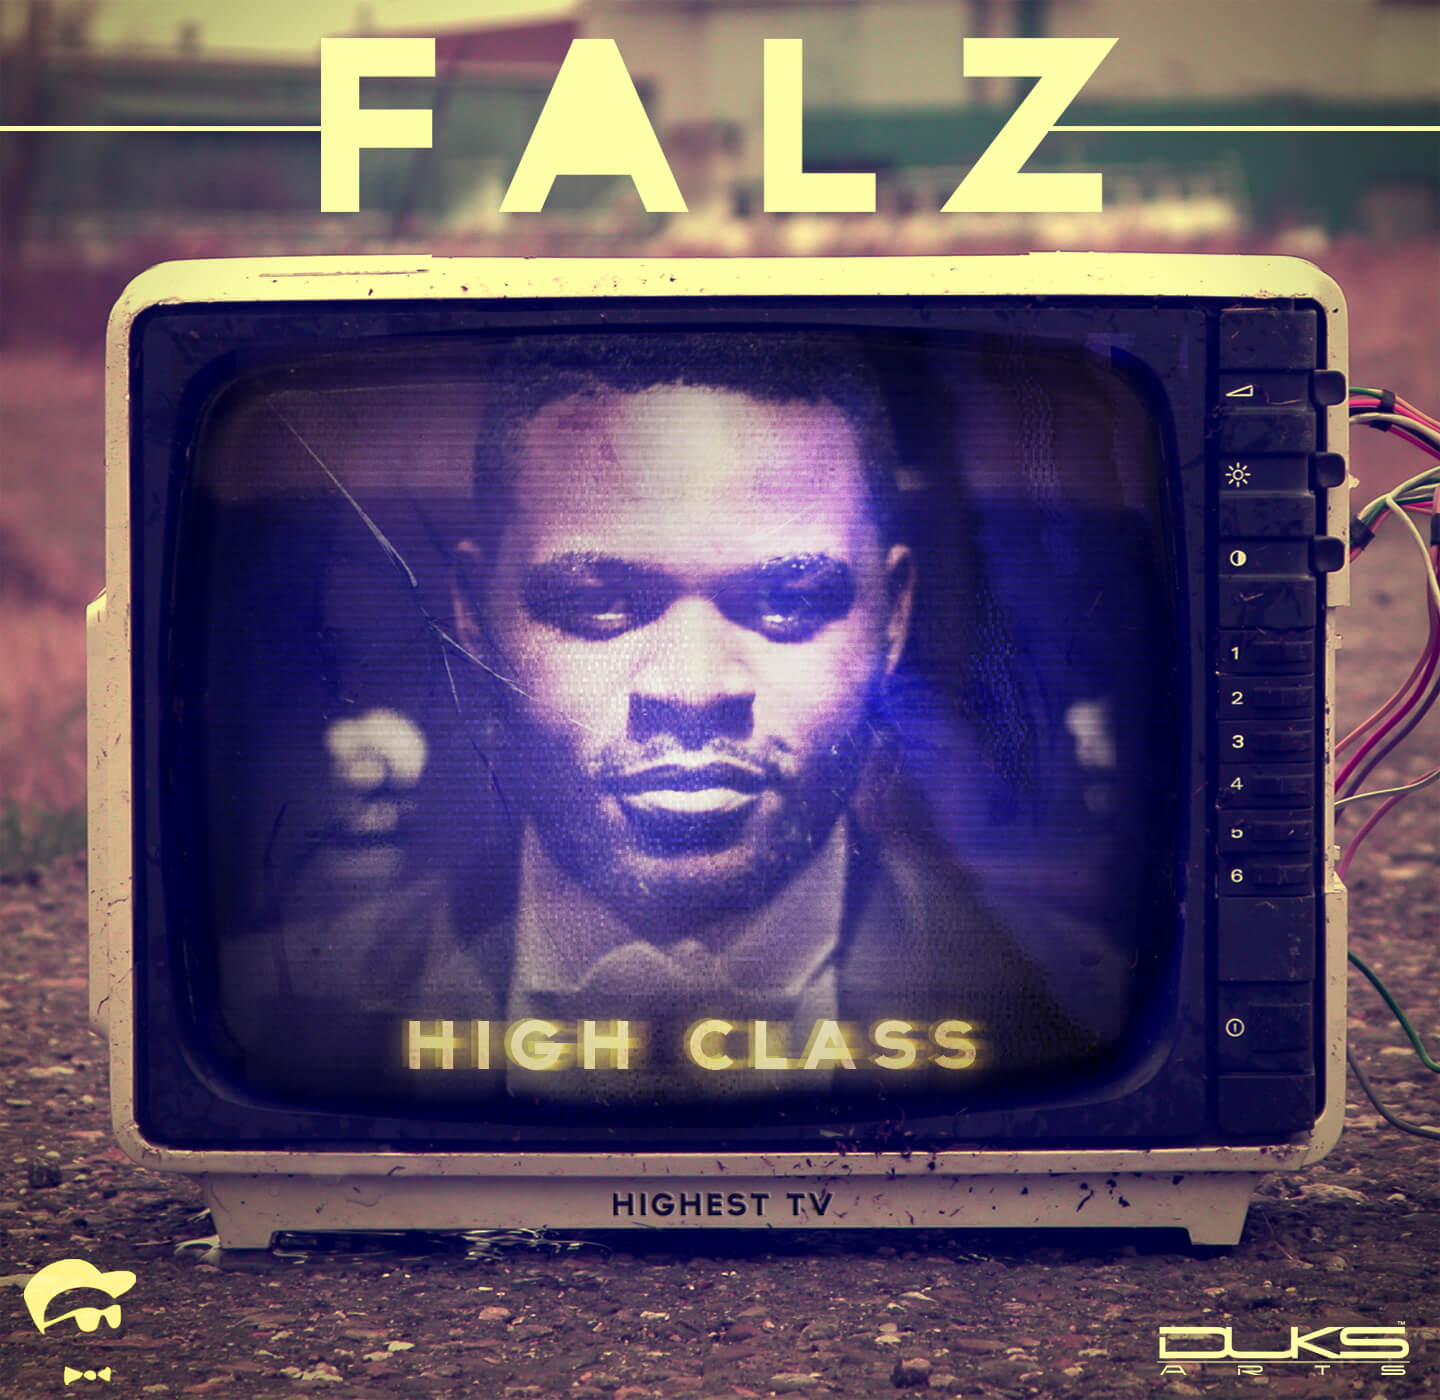 Falz High Class Artwork